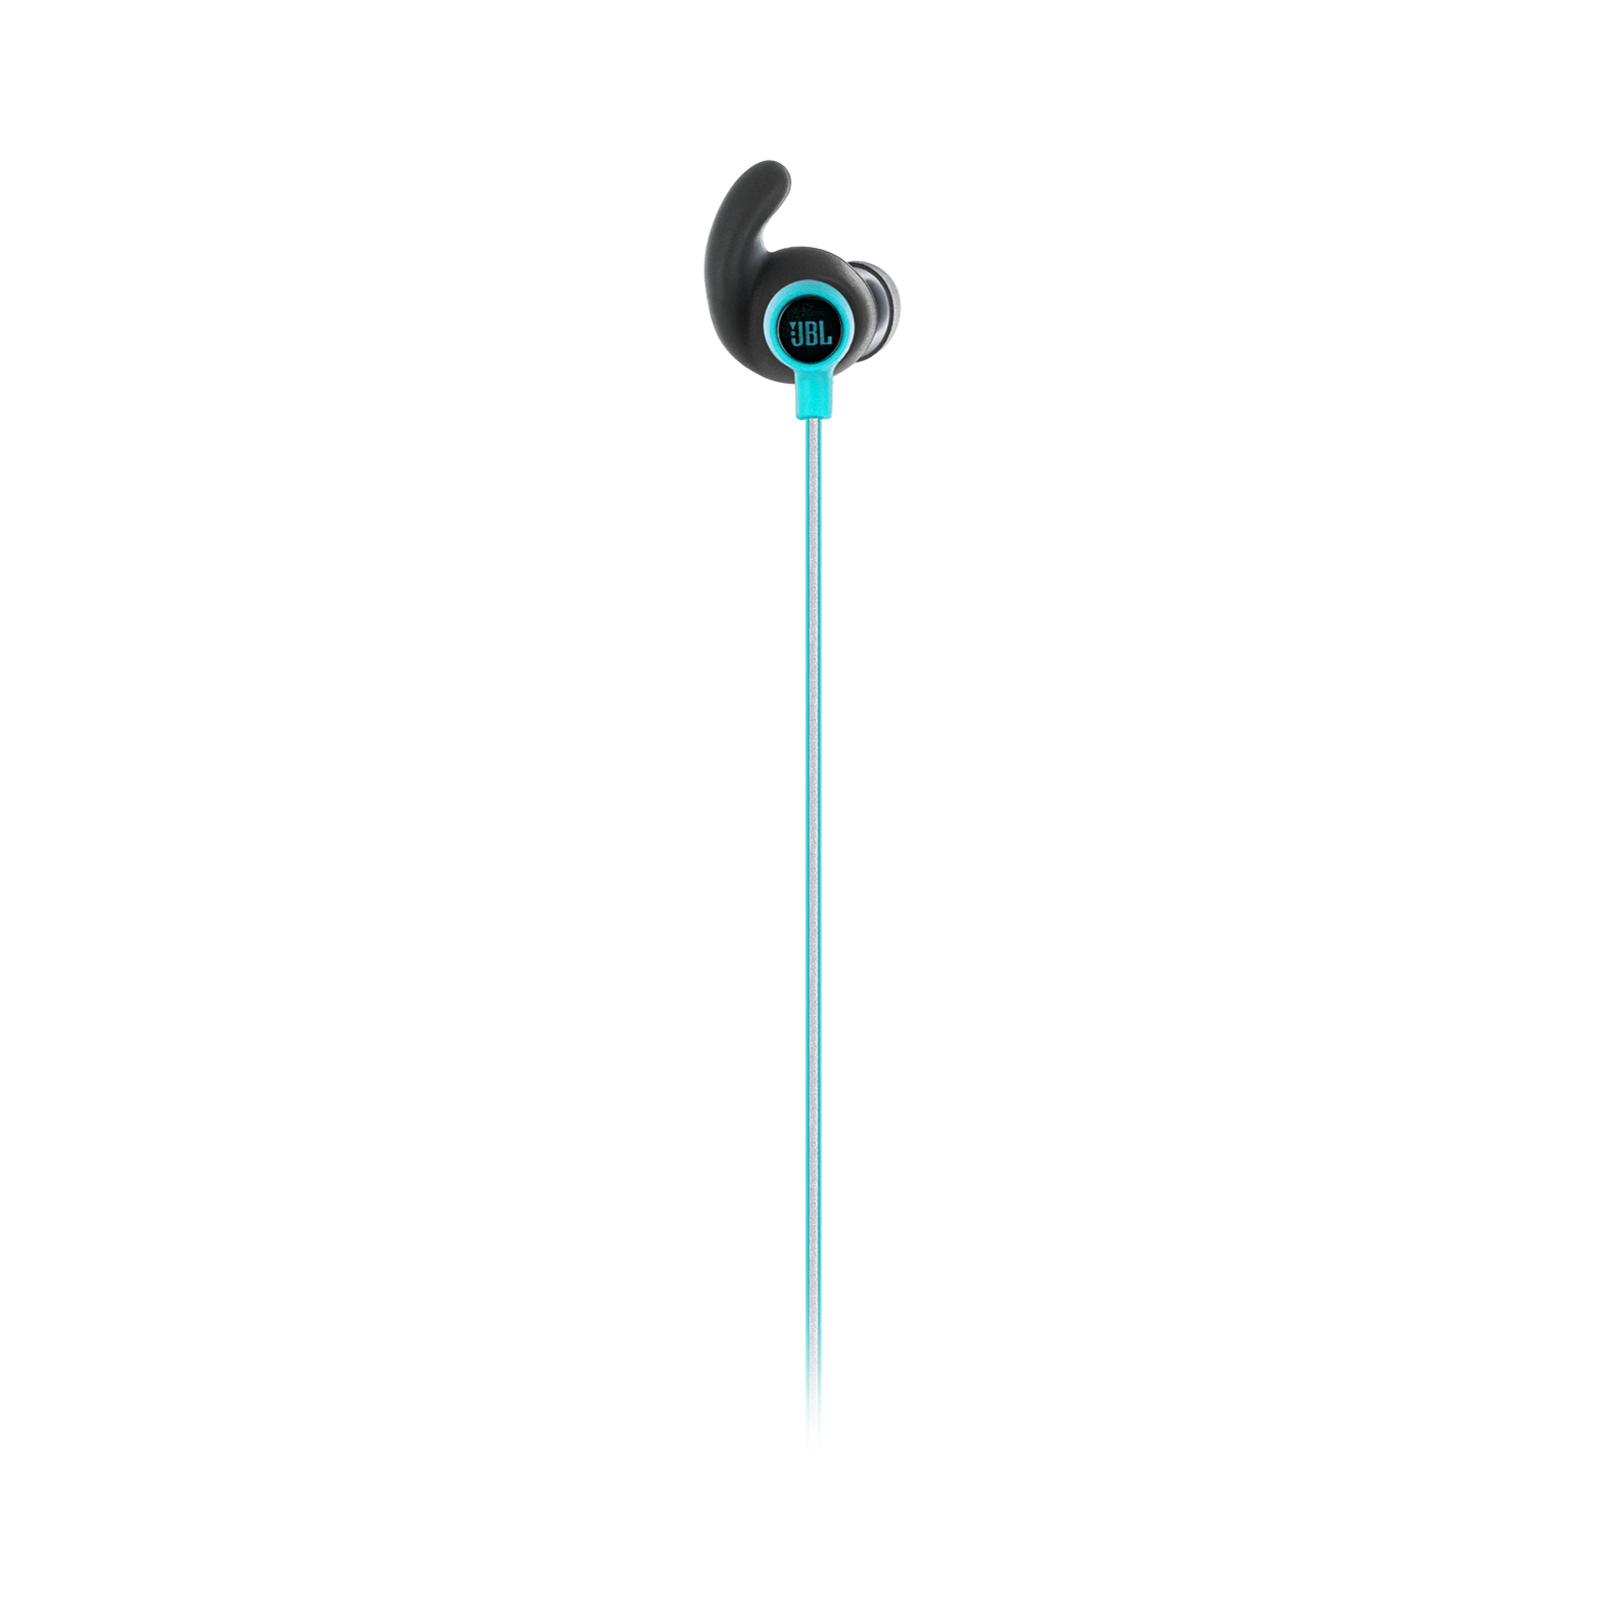 Reflect Mini - Teal - Lightweight, in-ear sport headphones - Detailshot 4